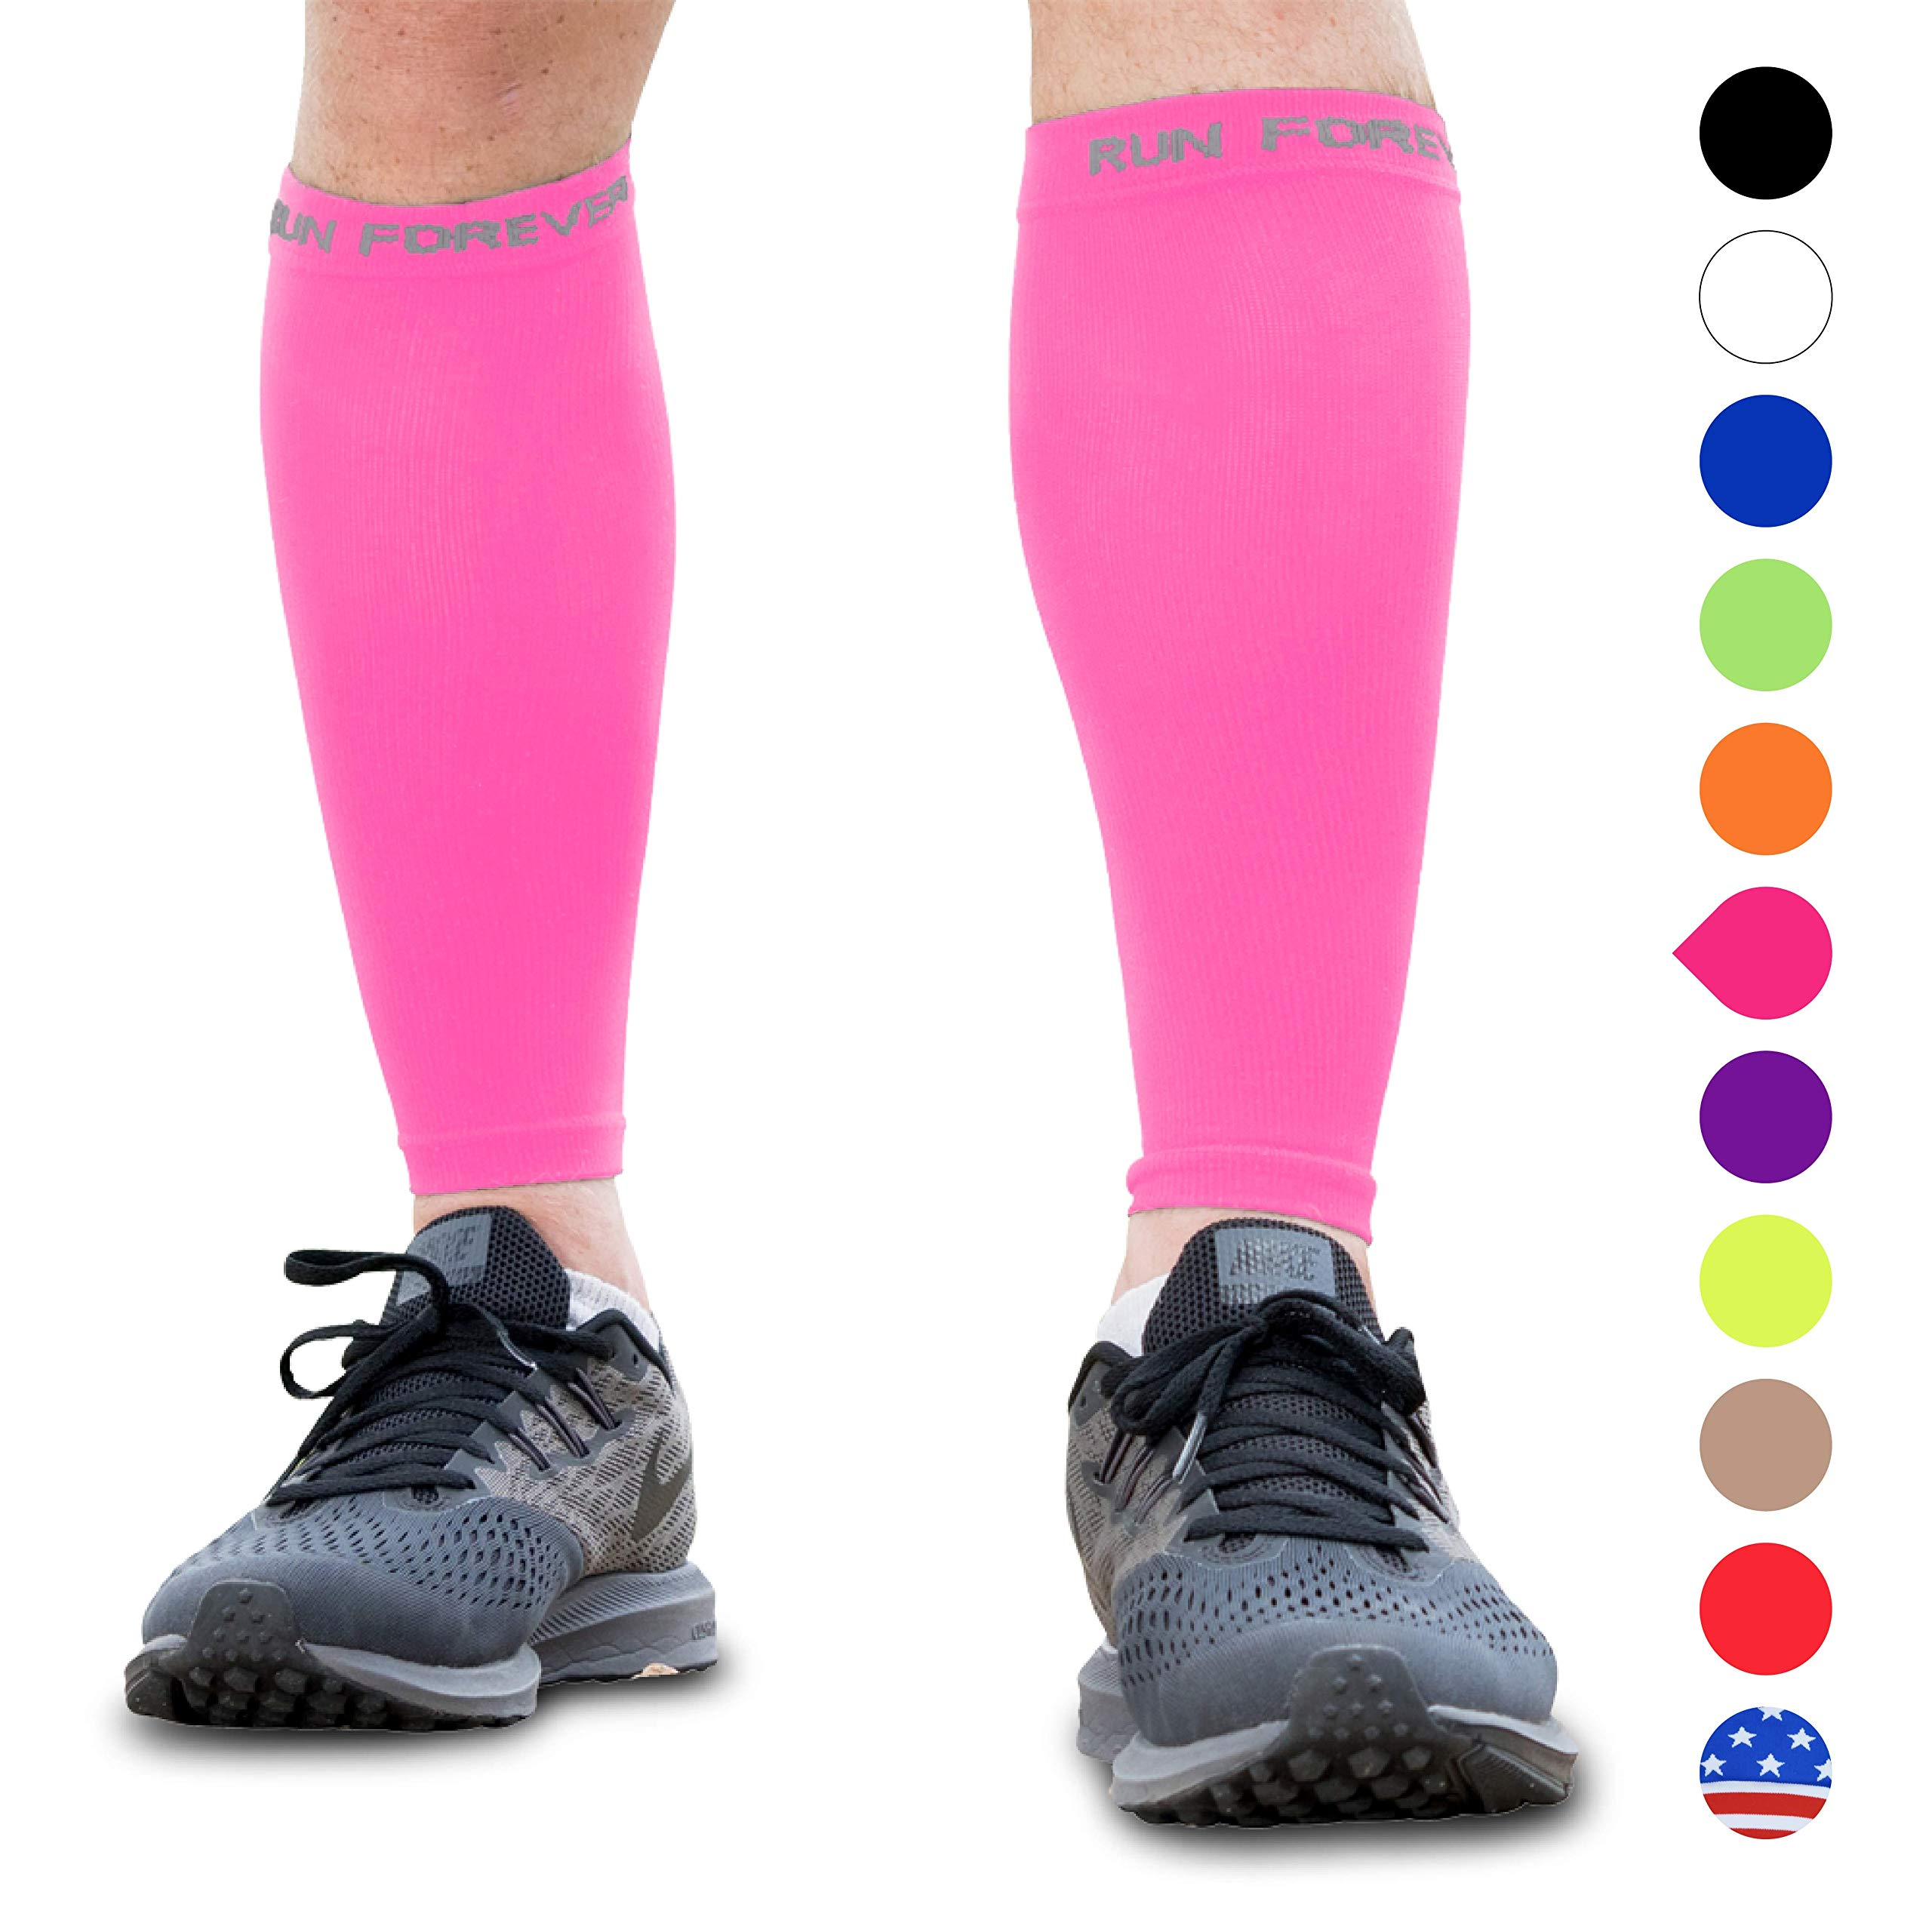 Calf Compression Sleeves - Leg Compression Socks for Runners, Shin Splint, Varicose Vein & Calf Pain Relief - Calf Guard Great for Running, Cycling, Maternity, Travel, Nurses (Pink,Small) by Run Forever Sports